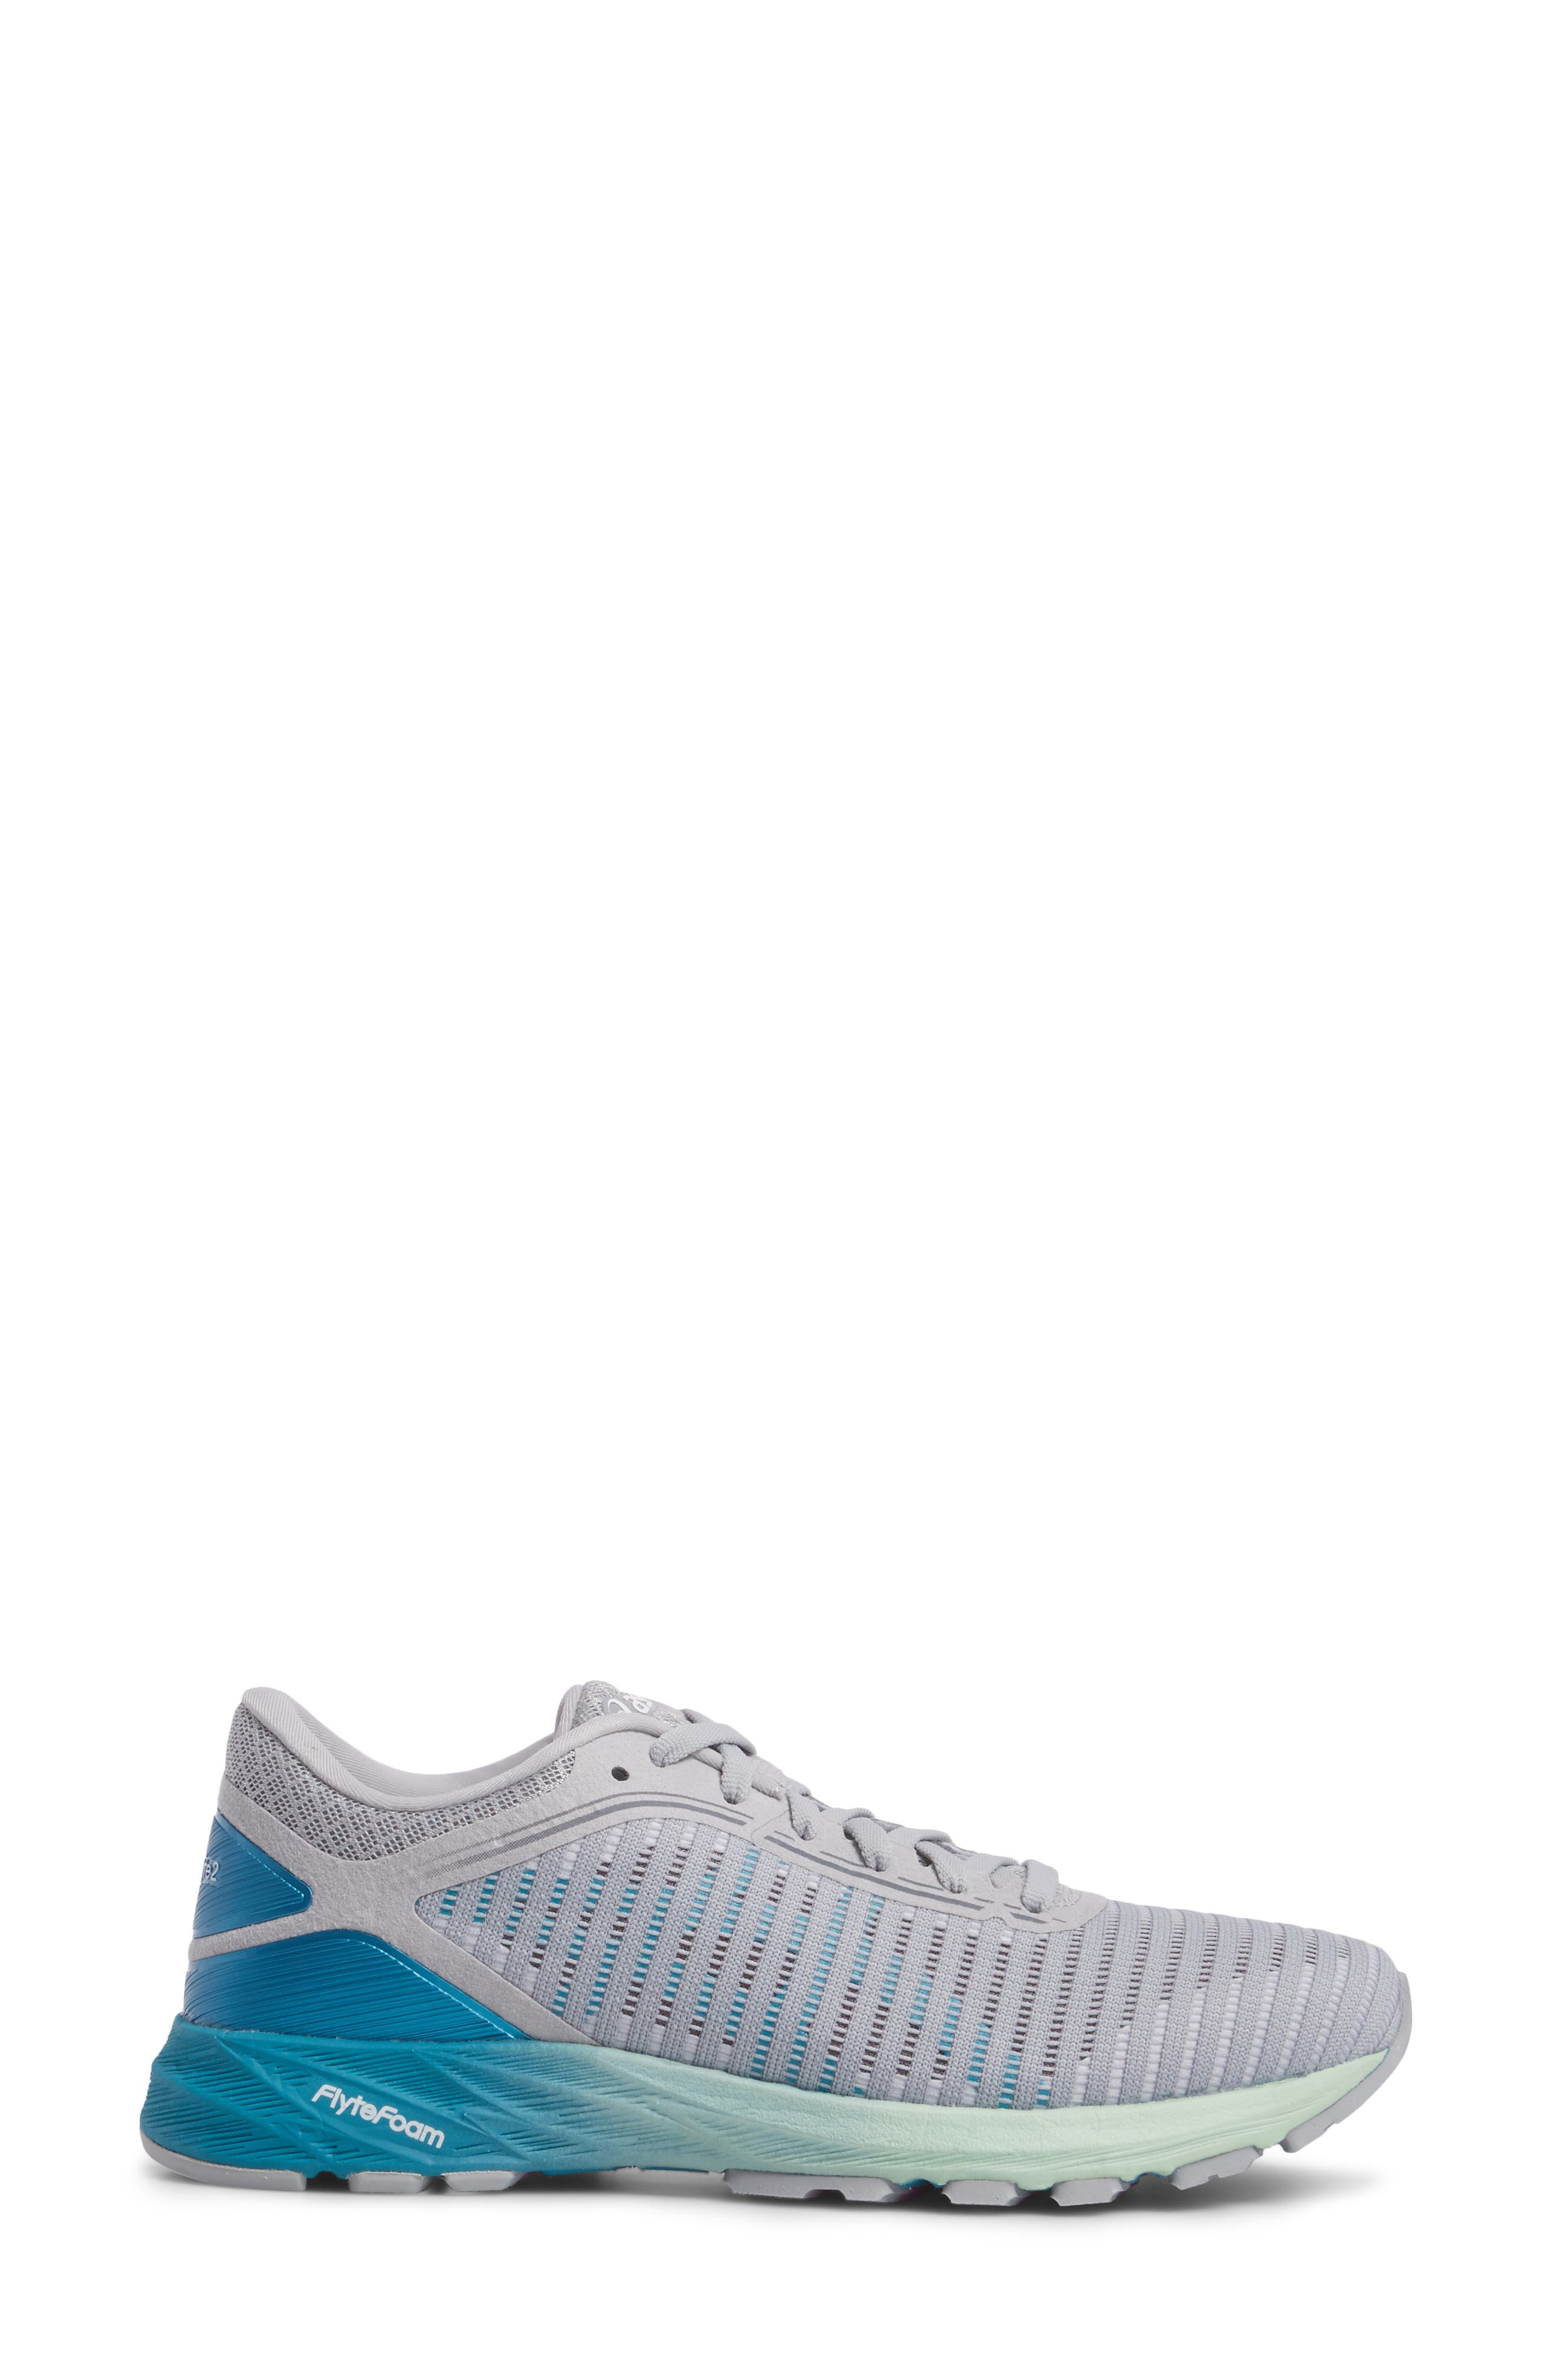 DynaFlyte 2 Running Shoe,                             Alternate thumbnail 3, color,                             MID GREY/ AQUA/ GLACIER